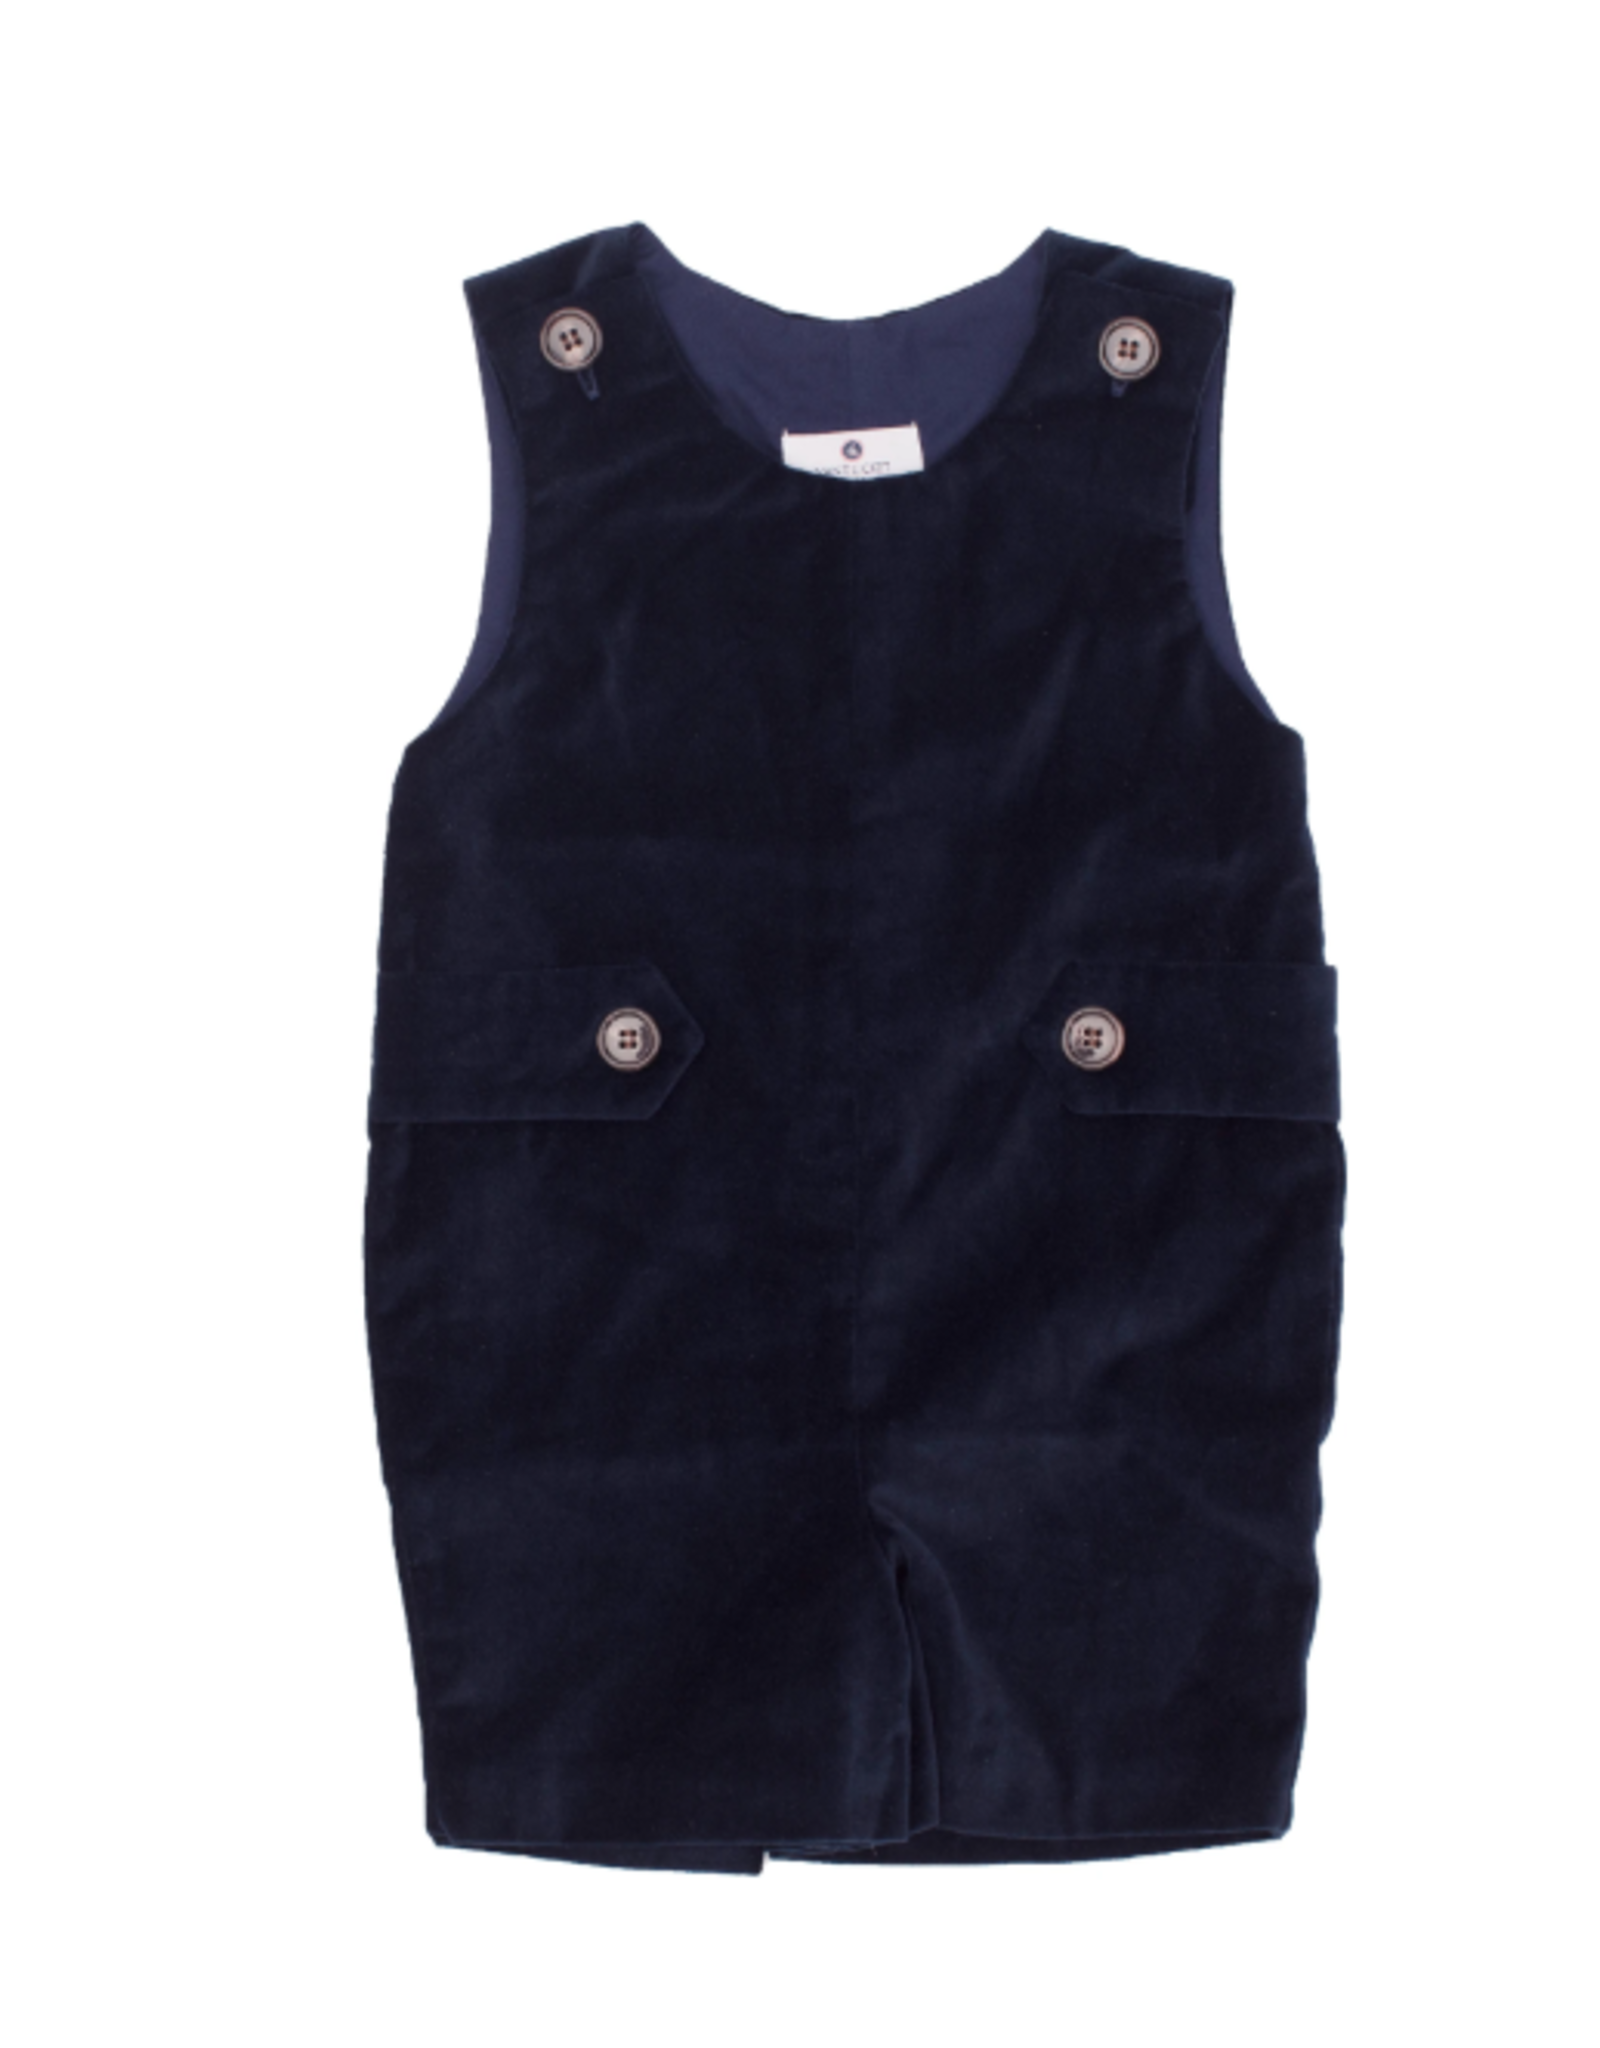 Nantucket Kids Kennedy Jon Jon Nautical Navy Velveteen 3-6m